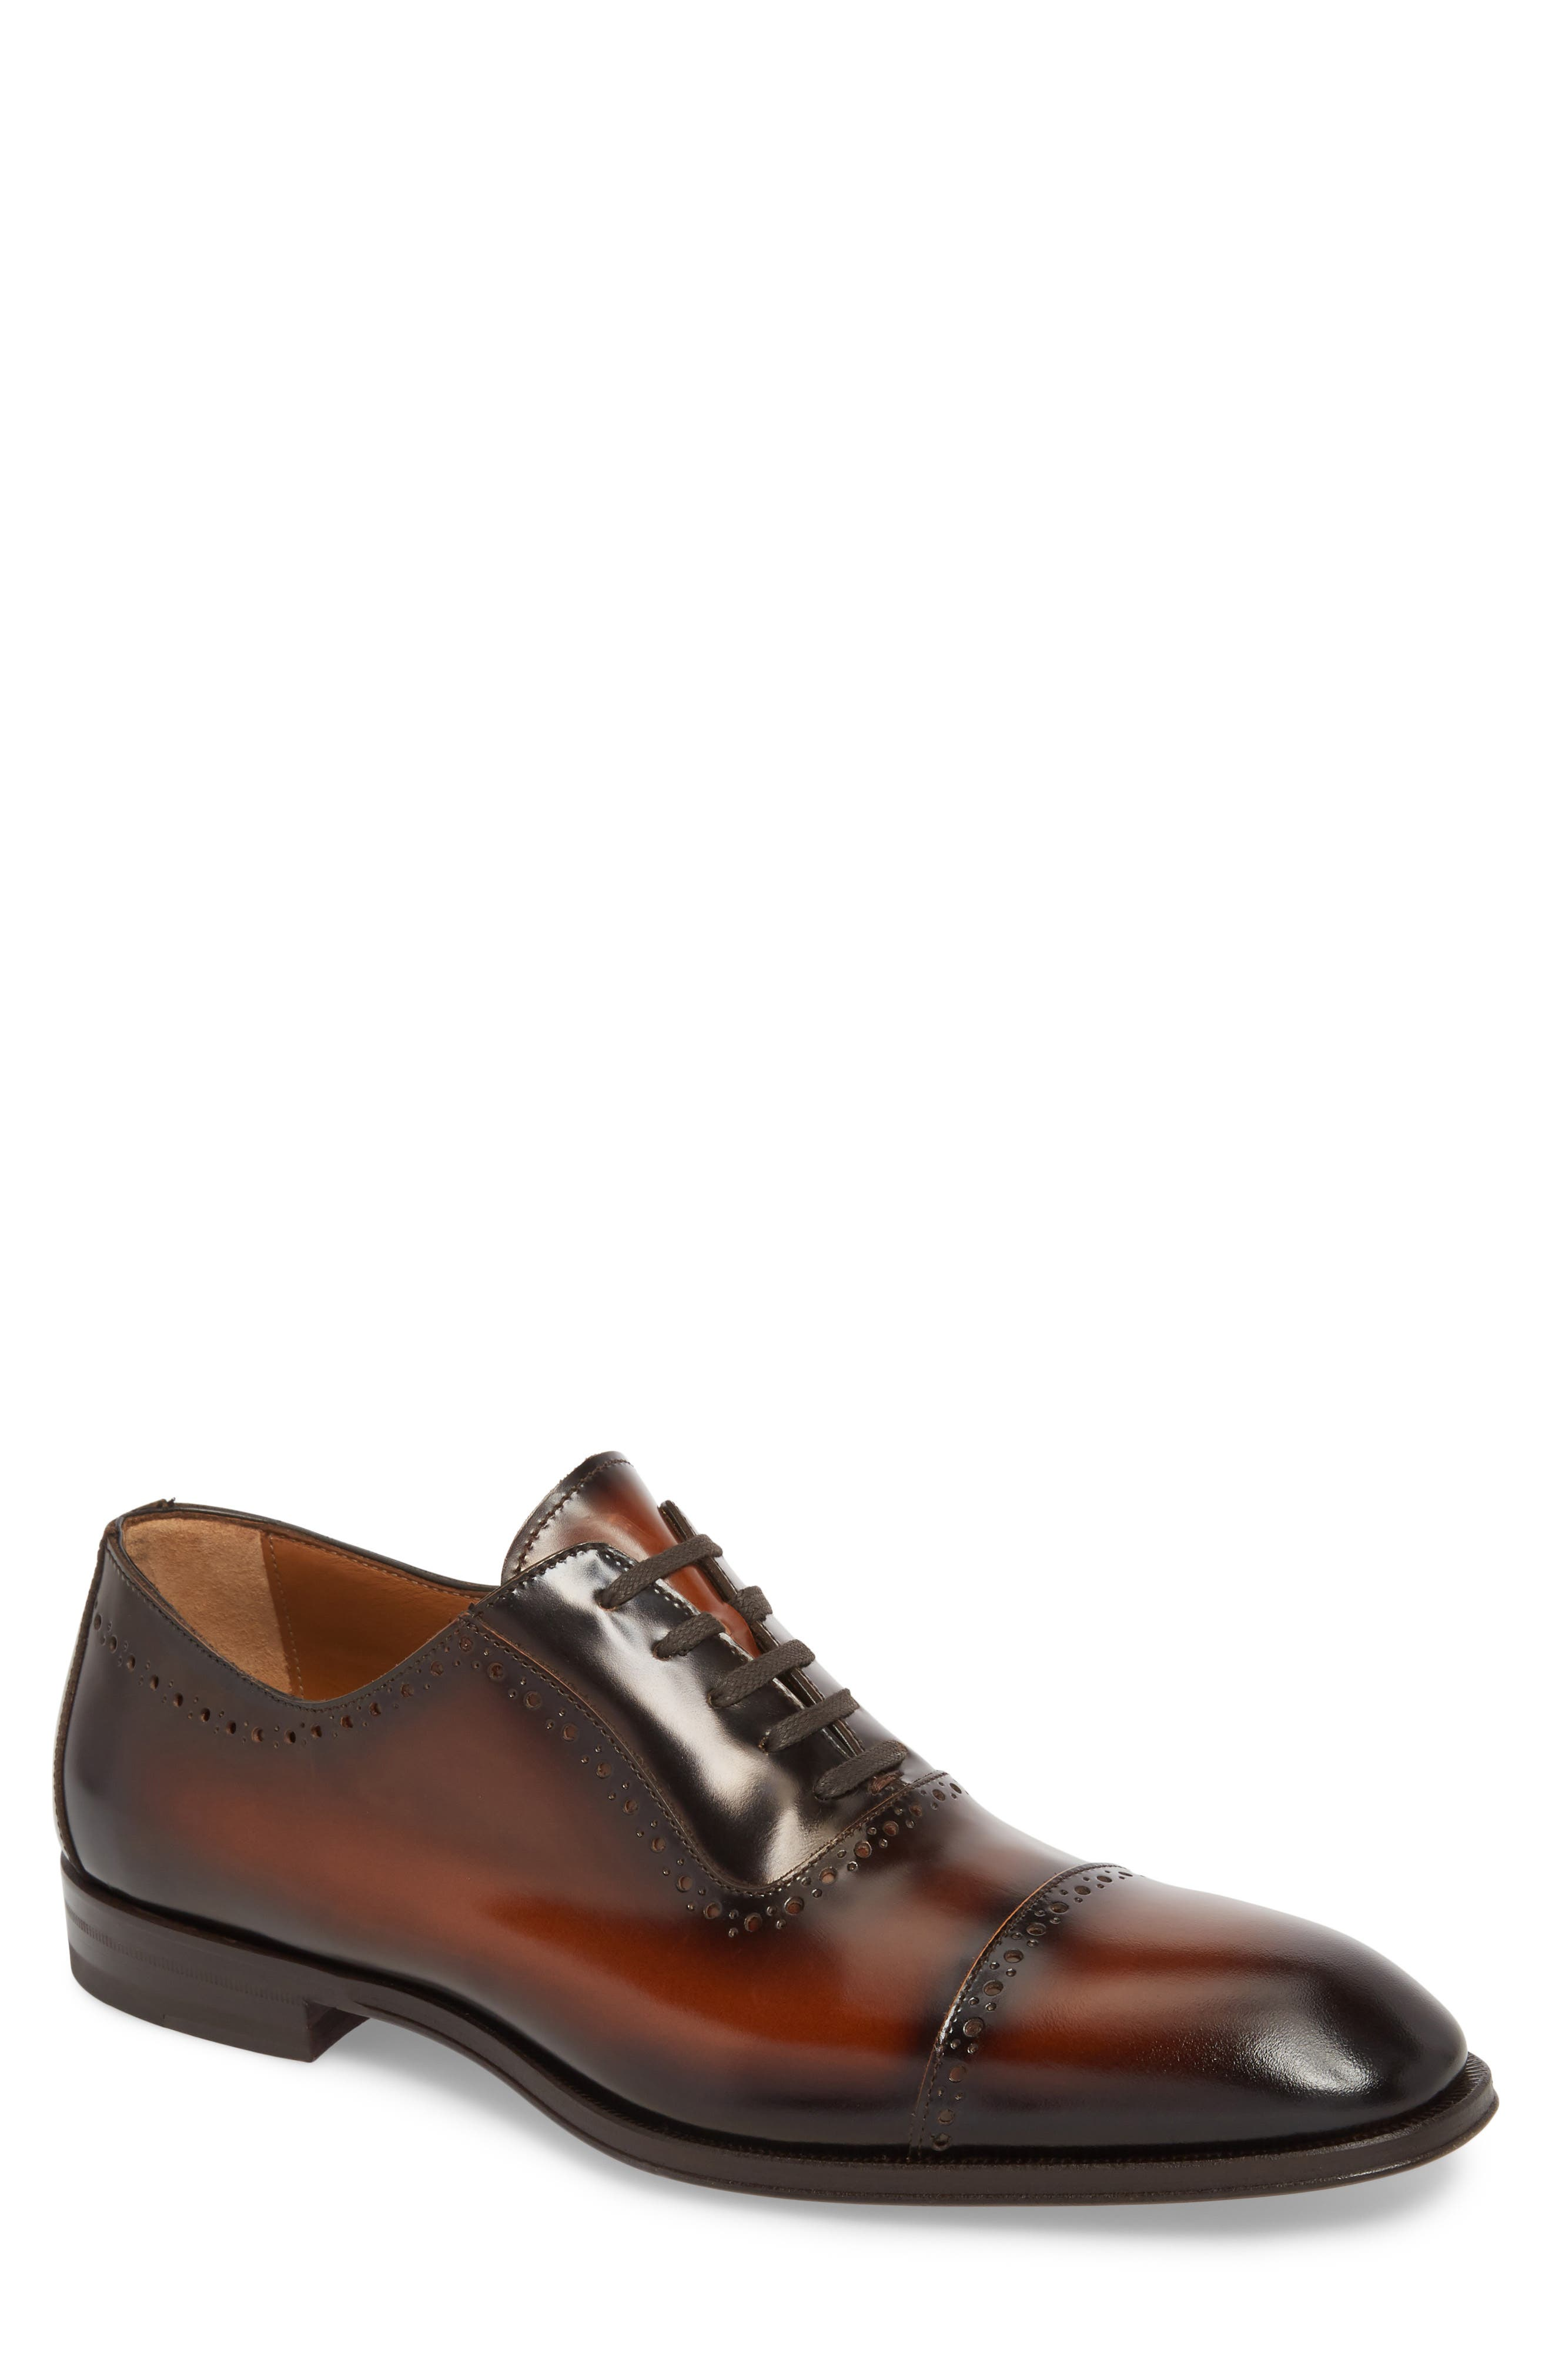 BRUNO MAGLI Lucca Cap Toe Oxford, Main, color, COGNAC